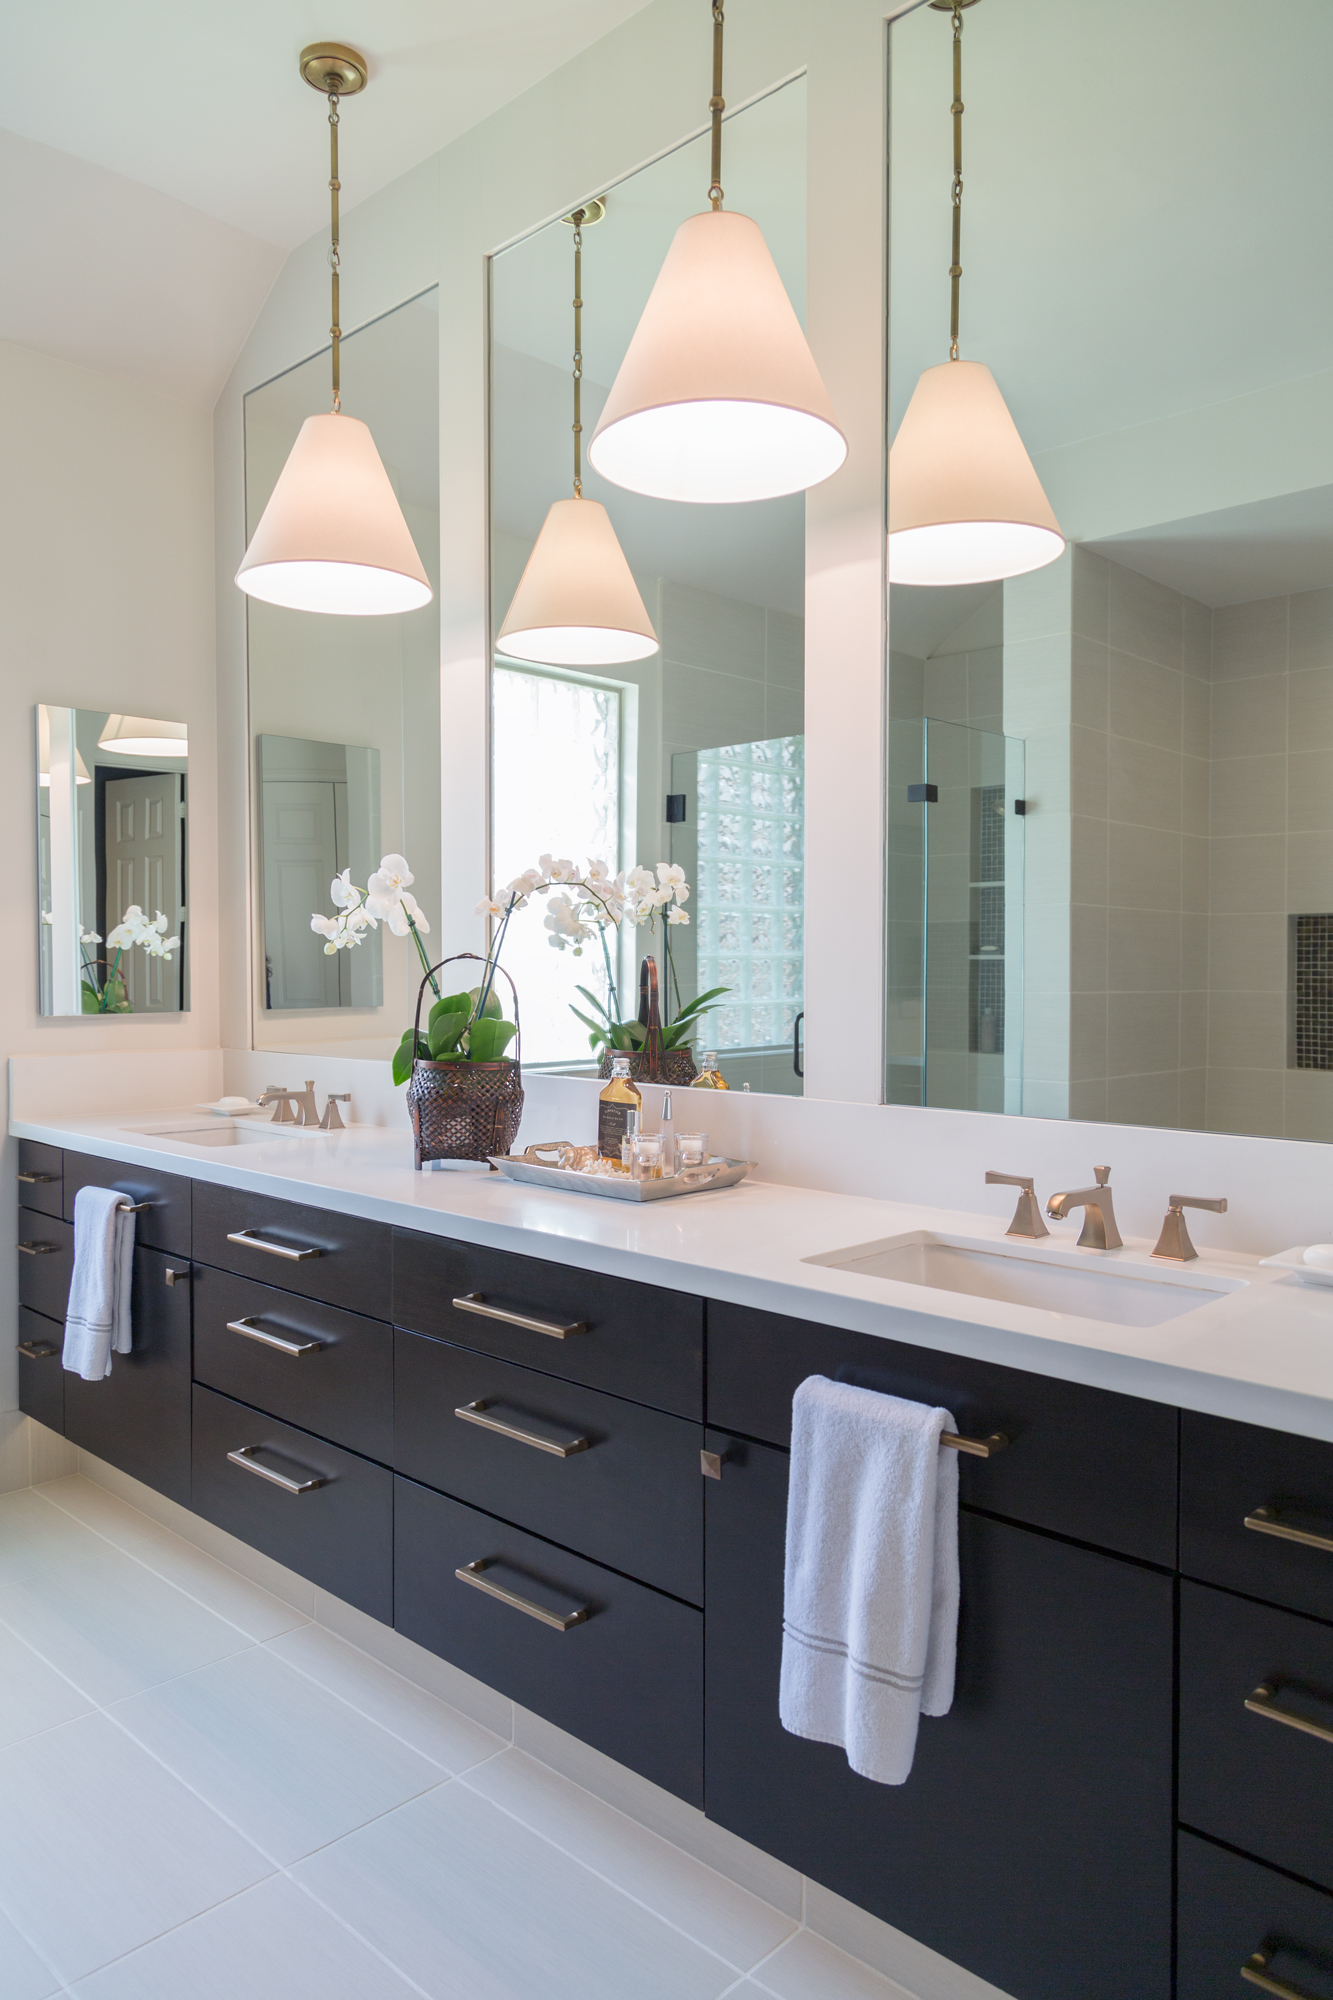 BEFORE & AFTER: A Master Bathroom Remodel Surprises ... on Master Bathroom Remodel Ideas  id=42621